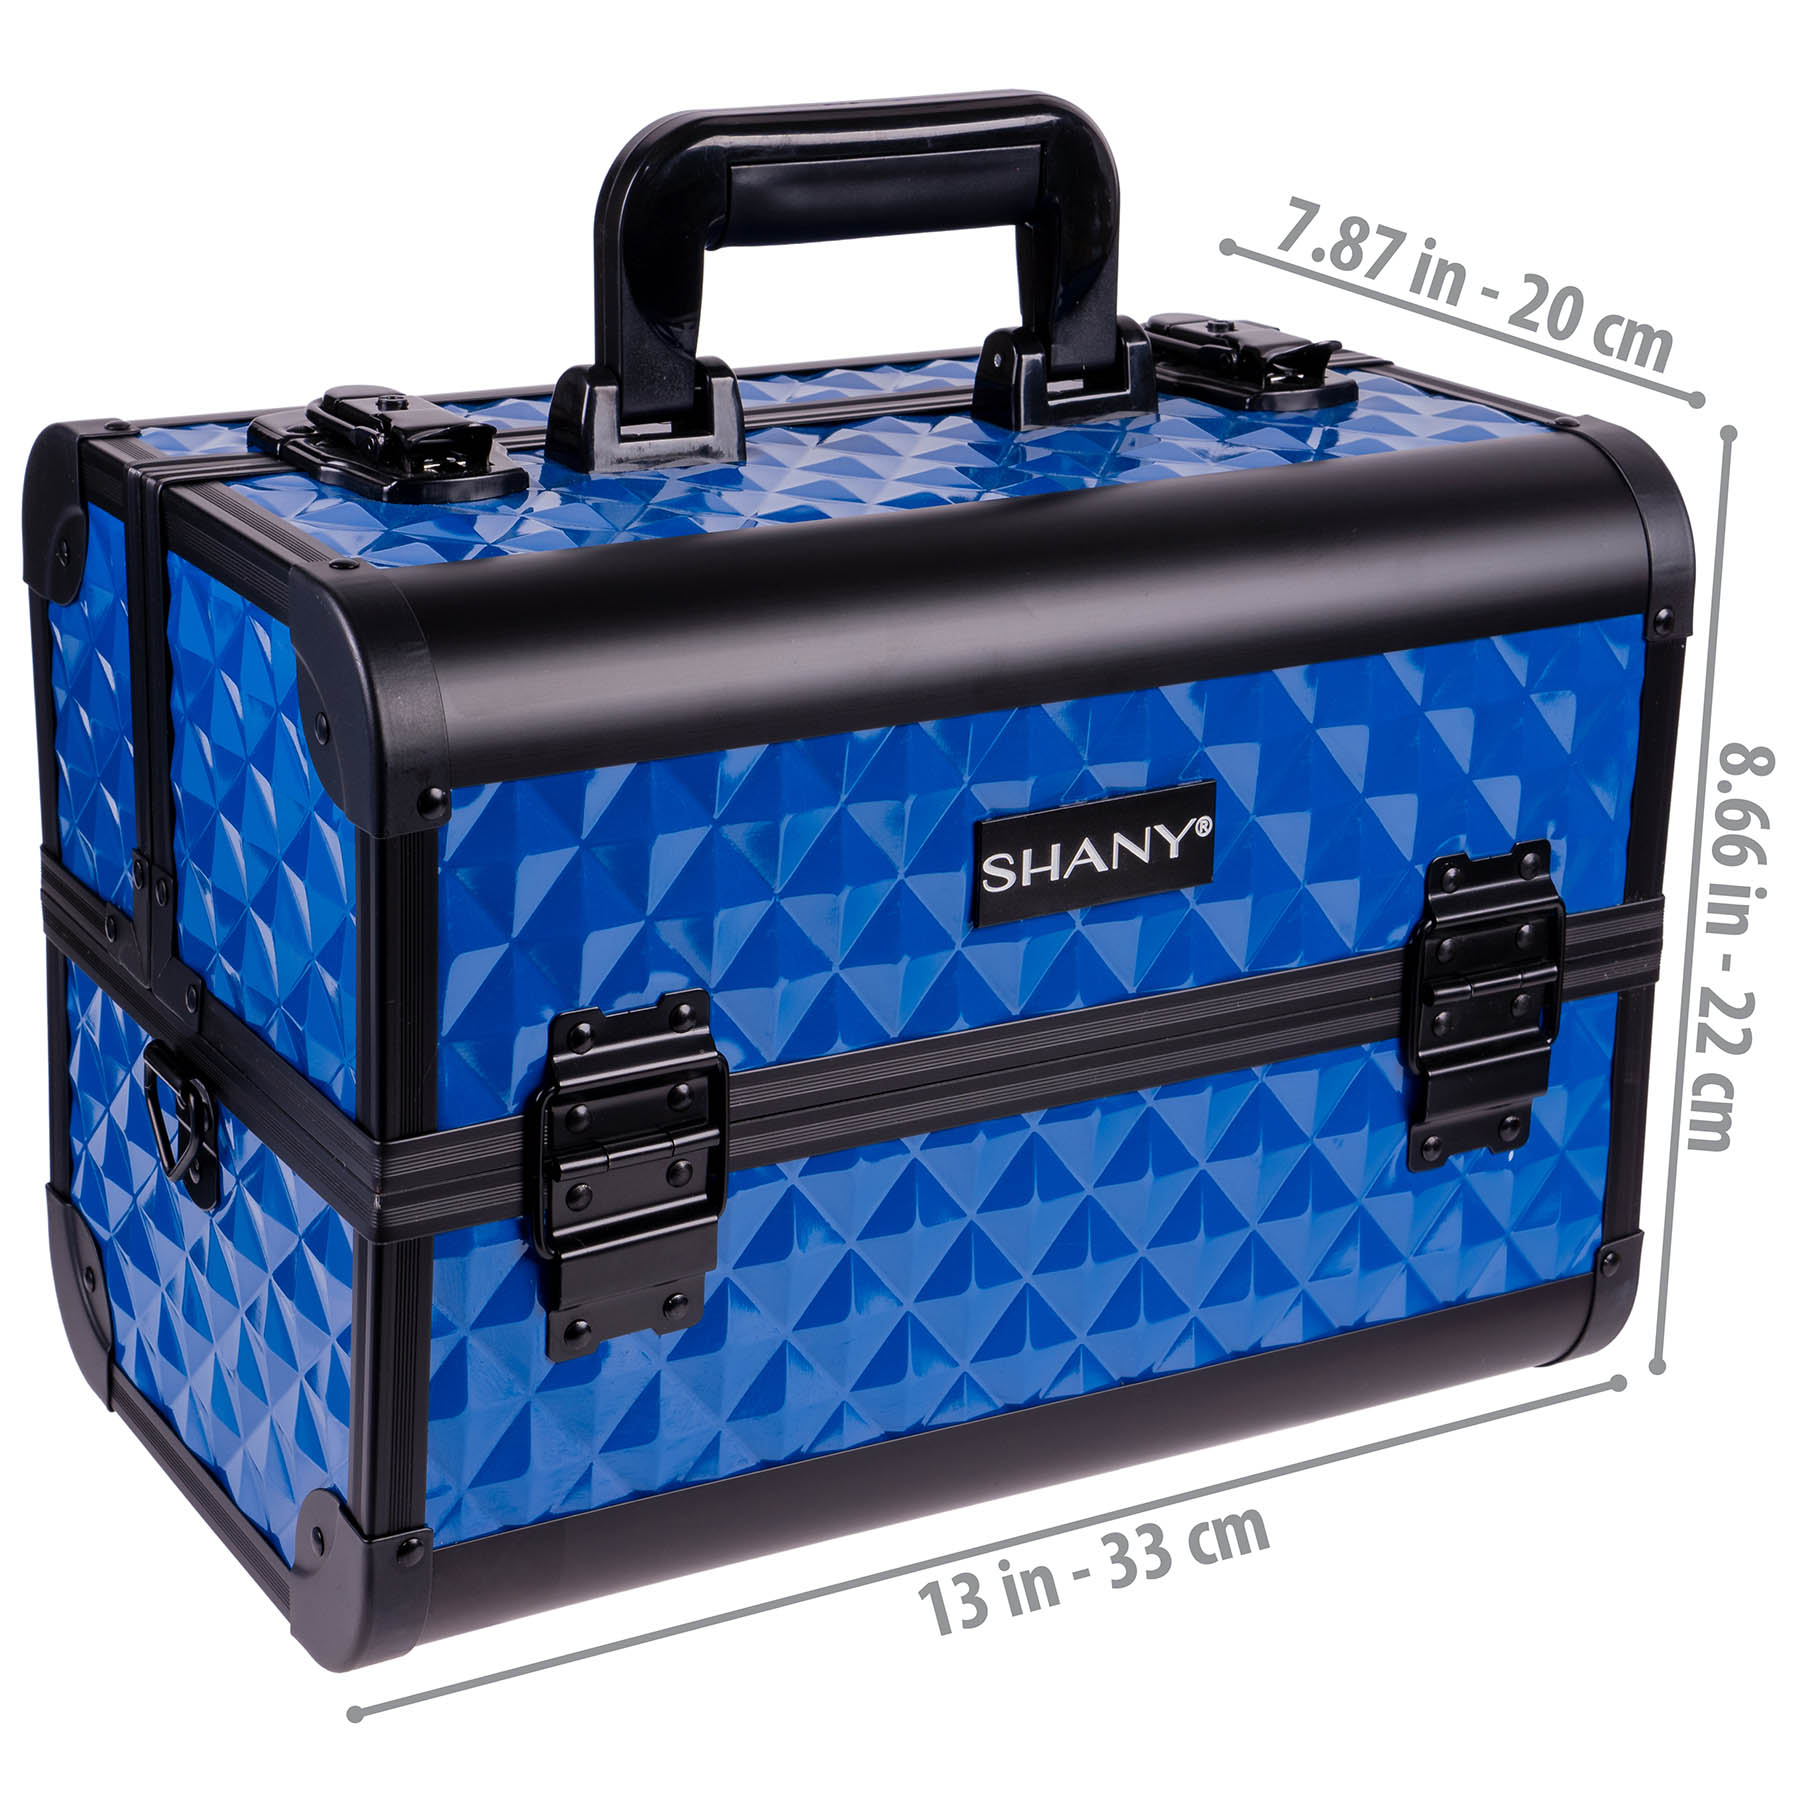 SHANY-Fantasy-Collection-Makeup-Artists-Cosmetics-Train-Case miniature 16